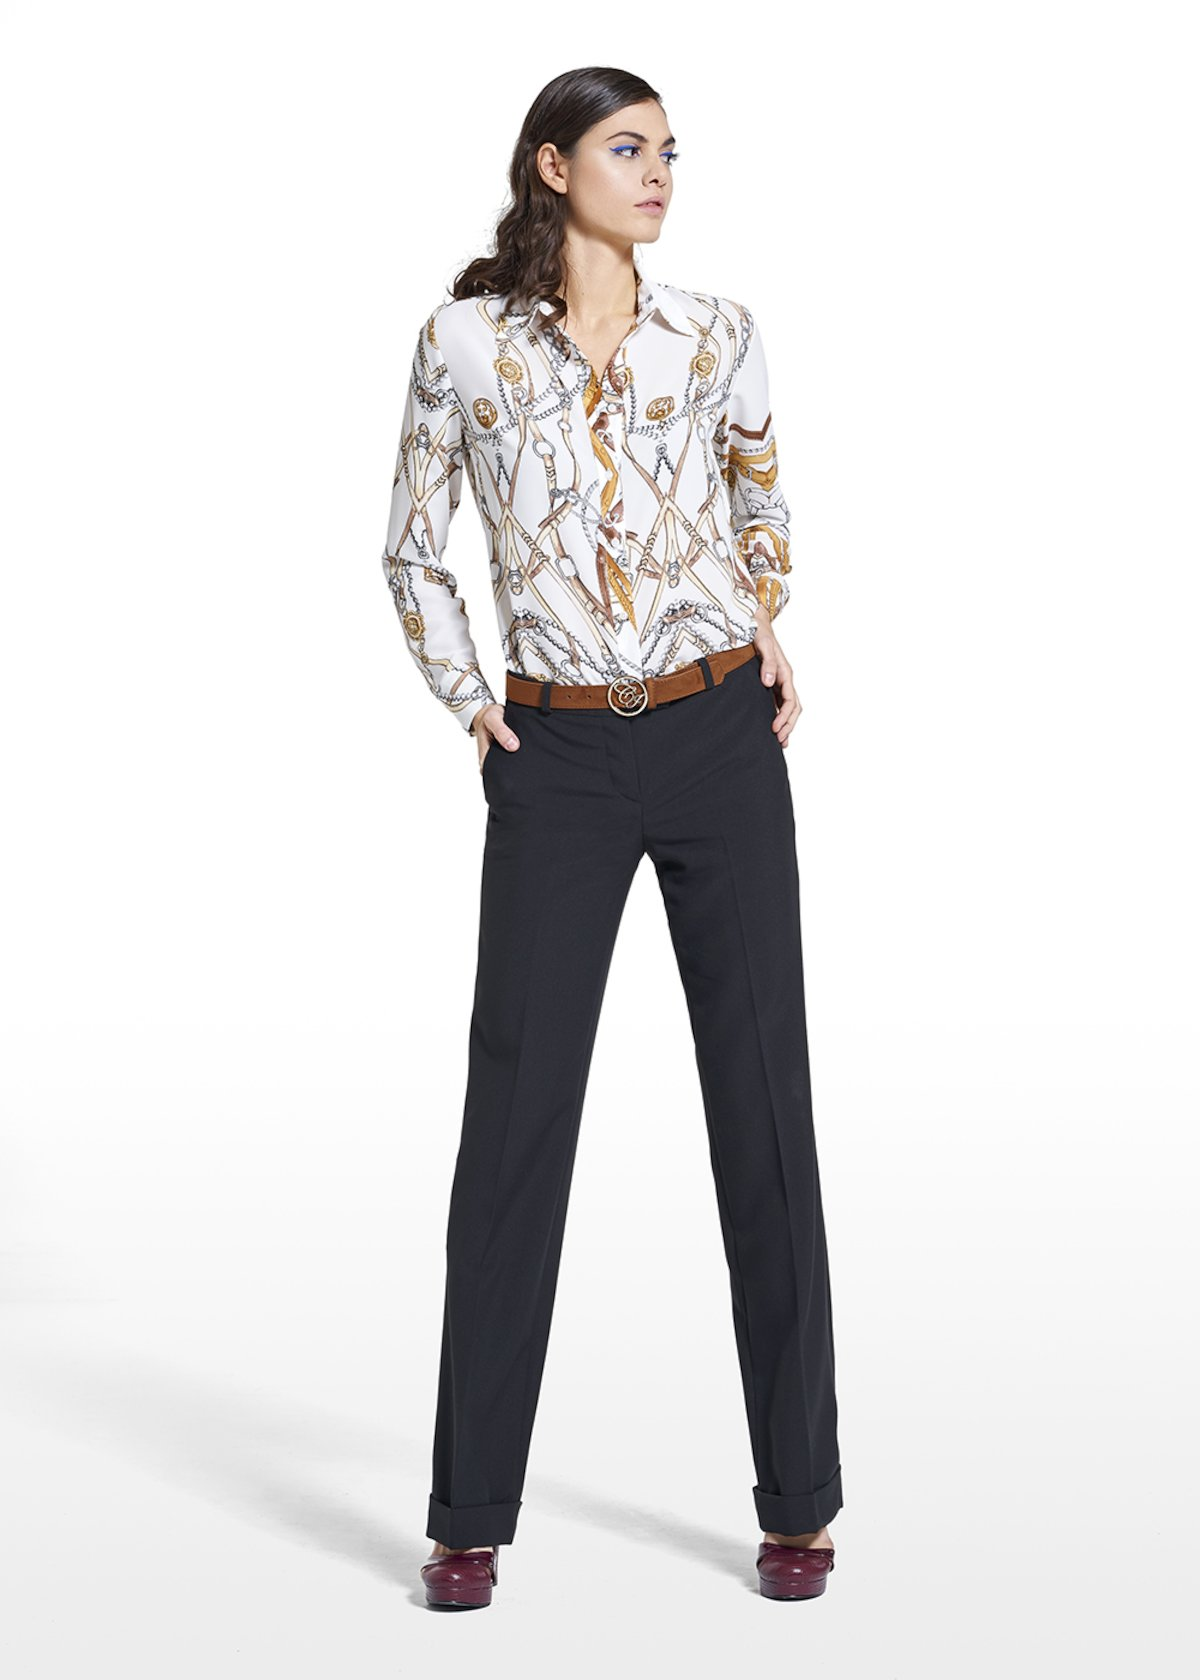 Patterned chains blouse Cecilia in georgette - White / Miele Fantasia - Woman - Category image